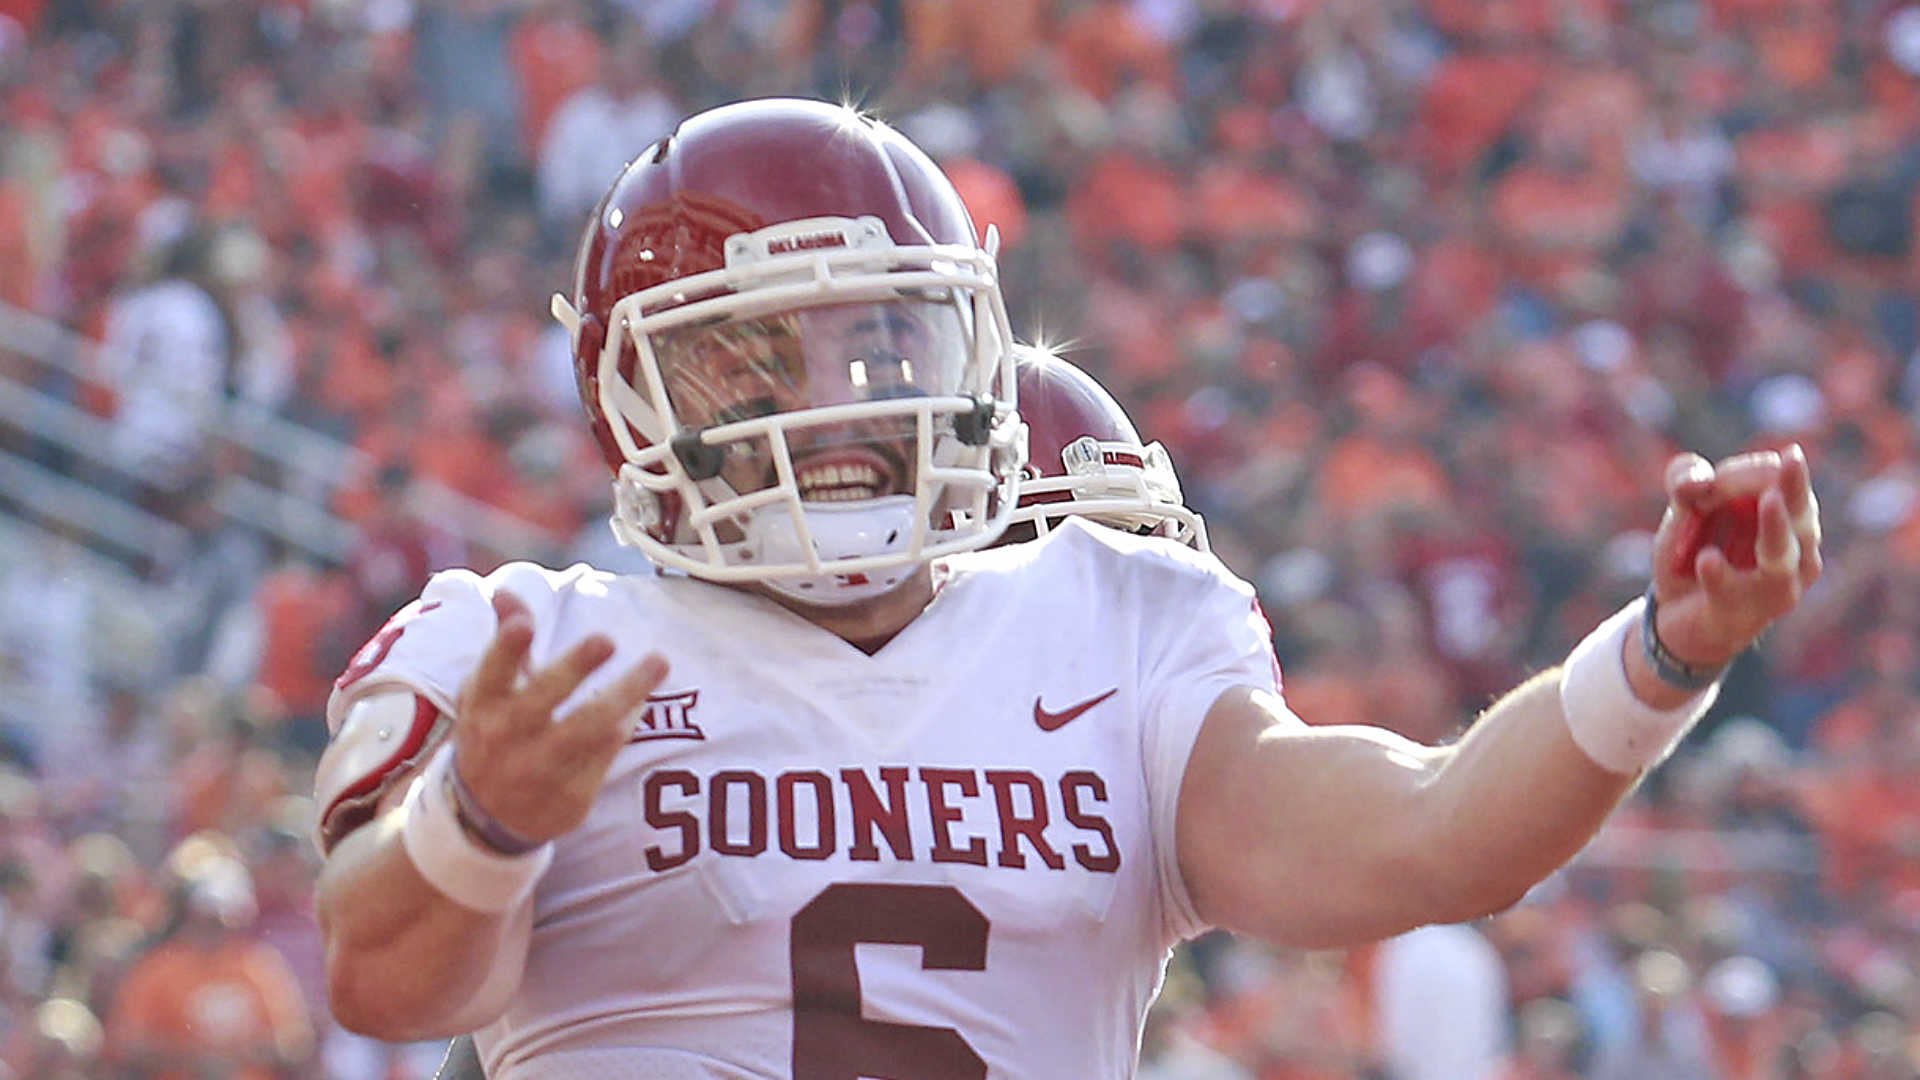 College Football Playoff rankings: Oklahoma will press for No. 4 spot